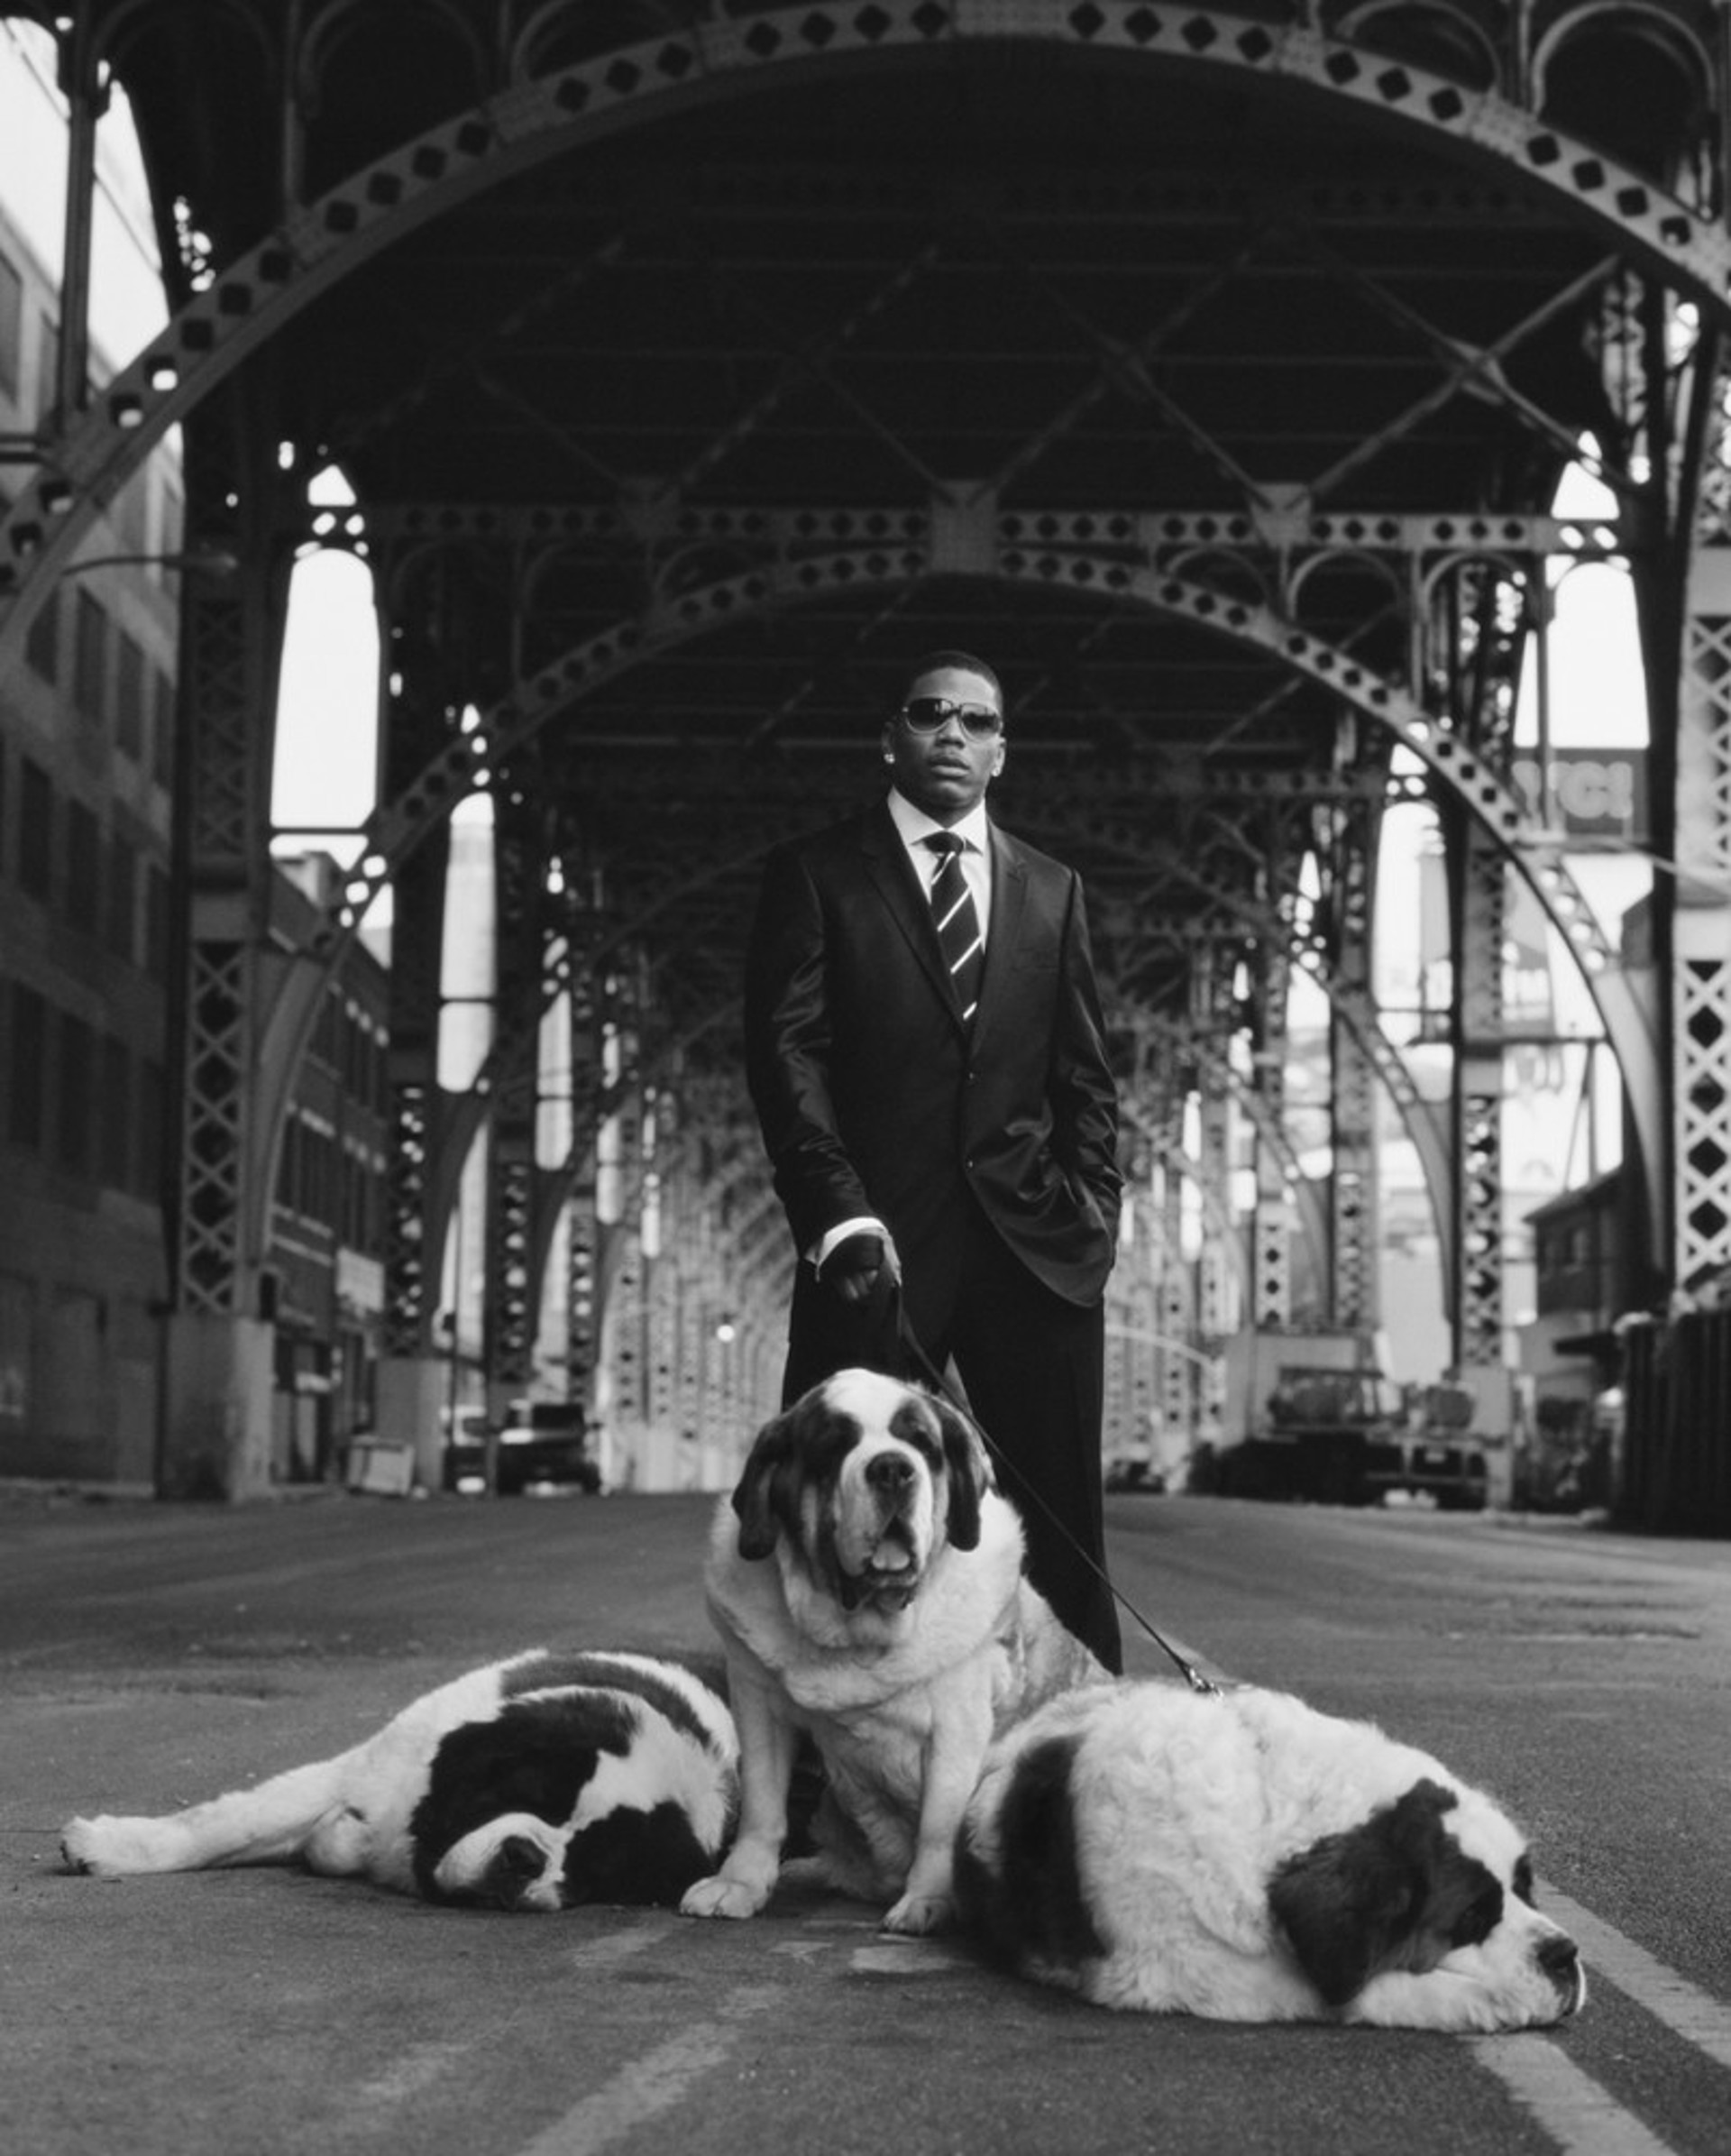 06025 Nelly With Dogs BW by Timothy White